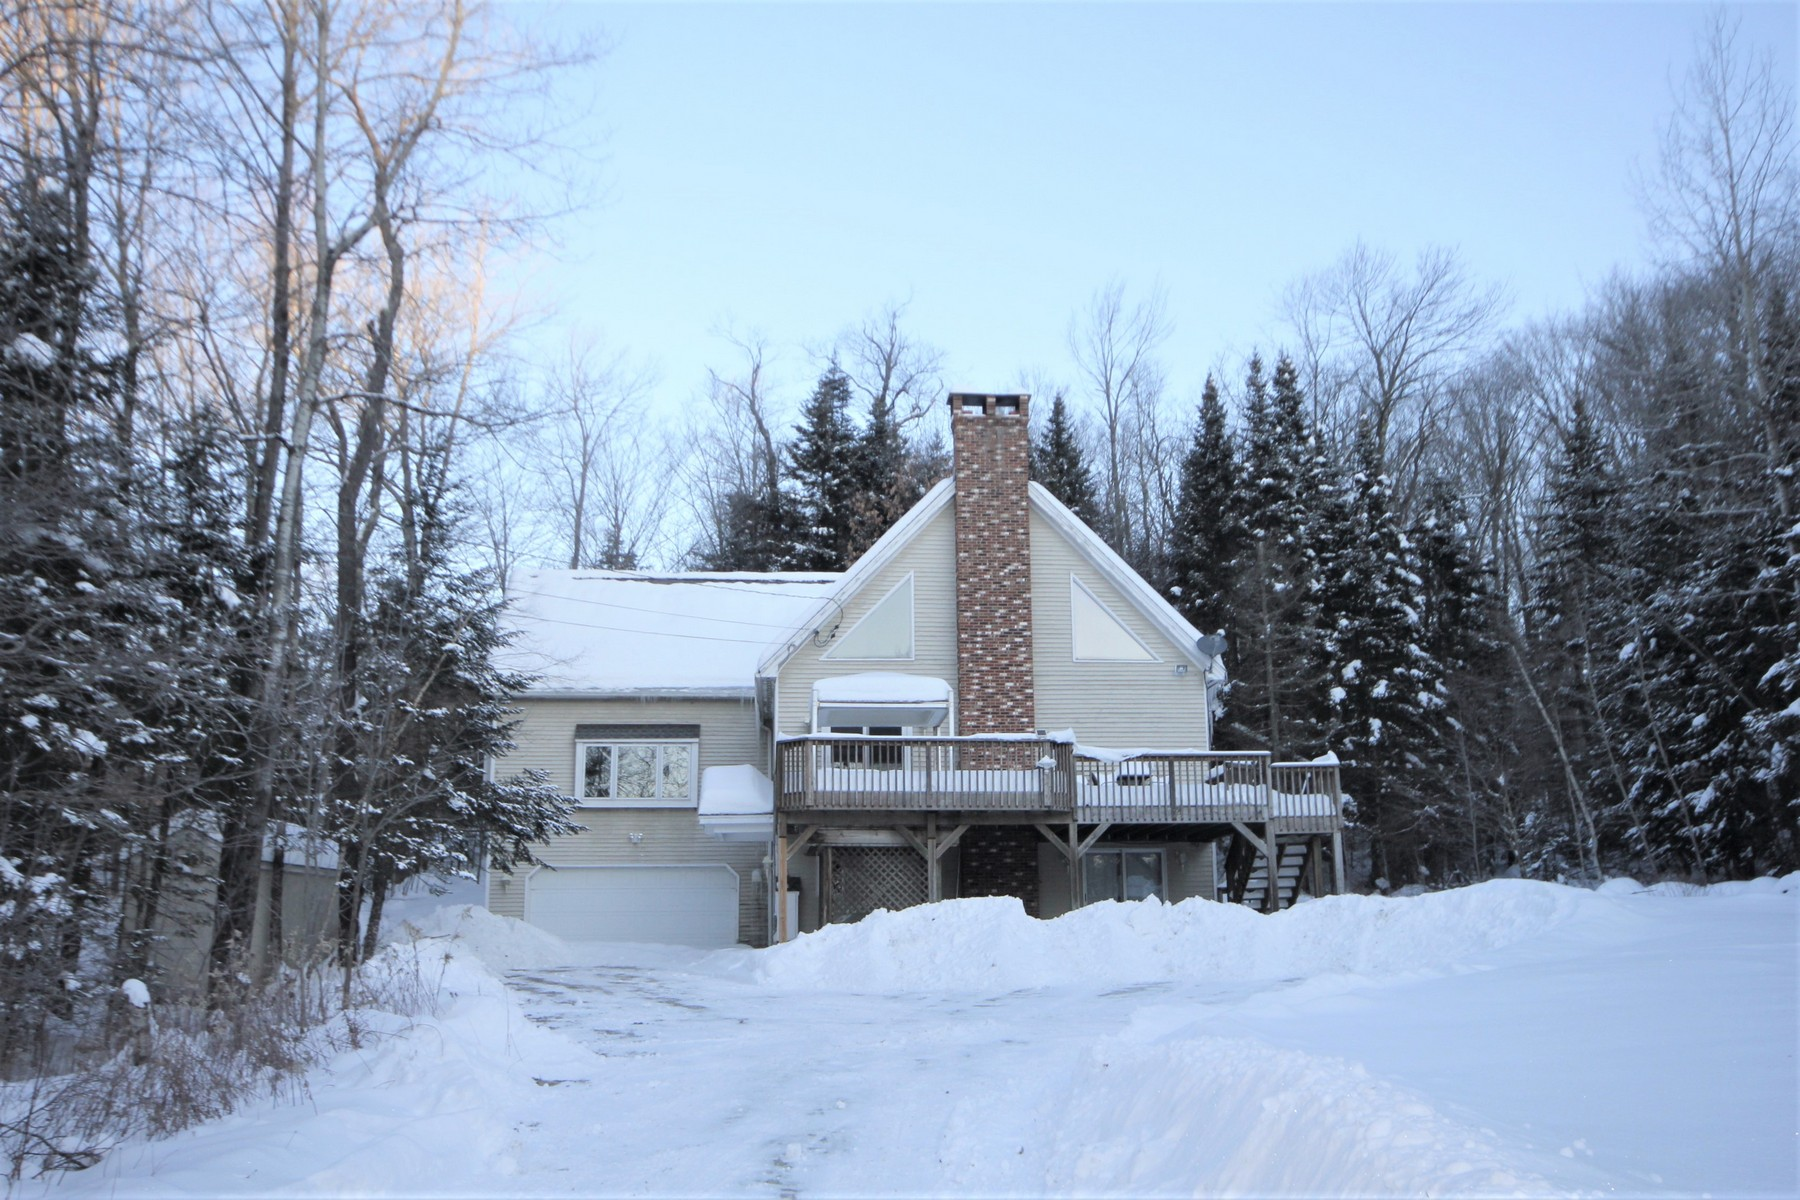 Single Family Homes for Sale at Direct Snowmobile Access 24 Blue Brook Road Dover, Vermont 05356 United States